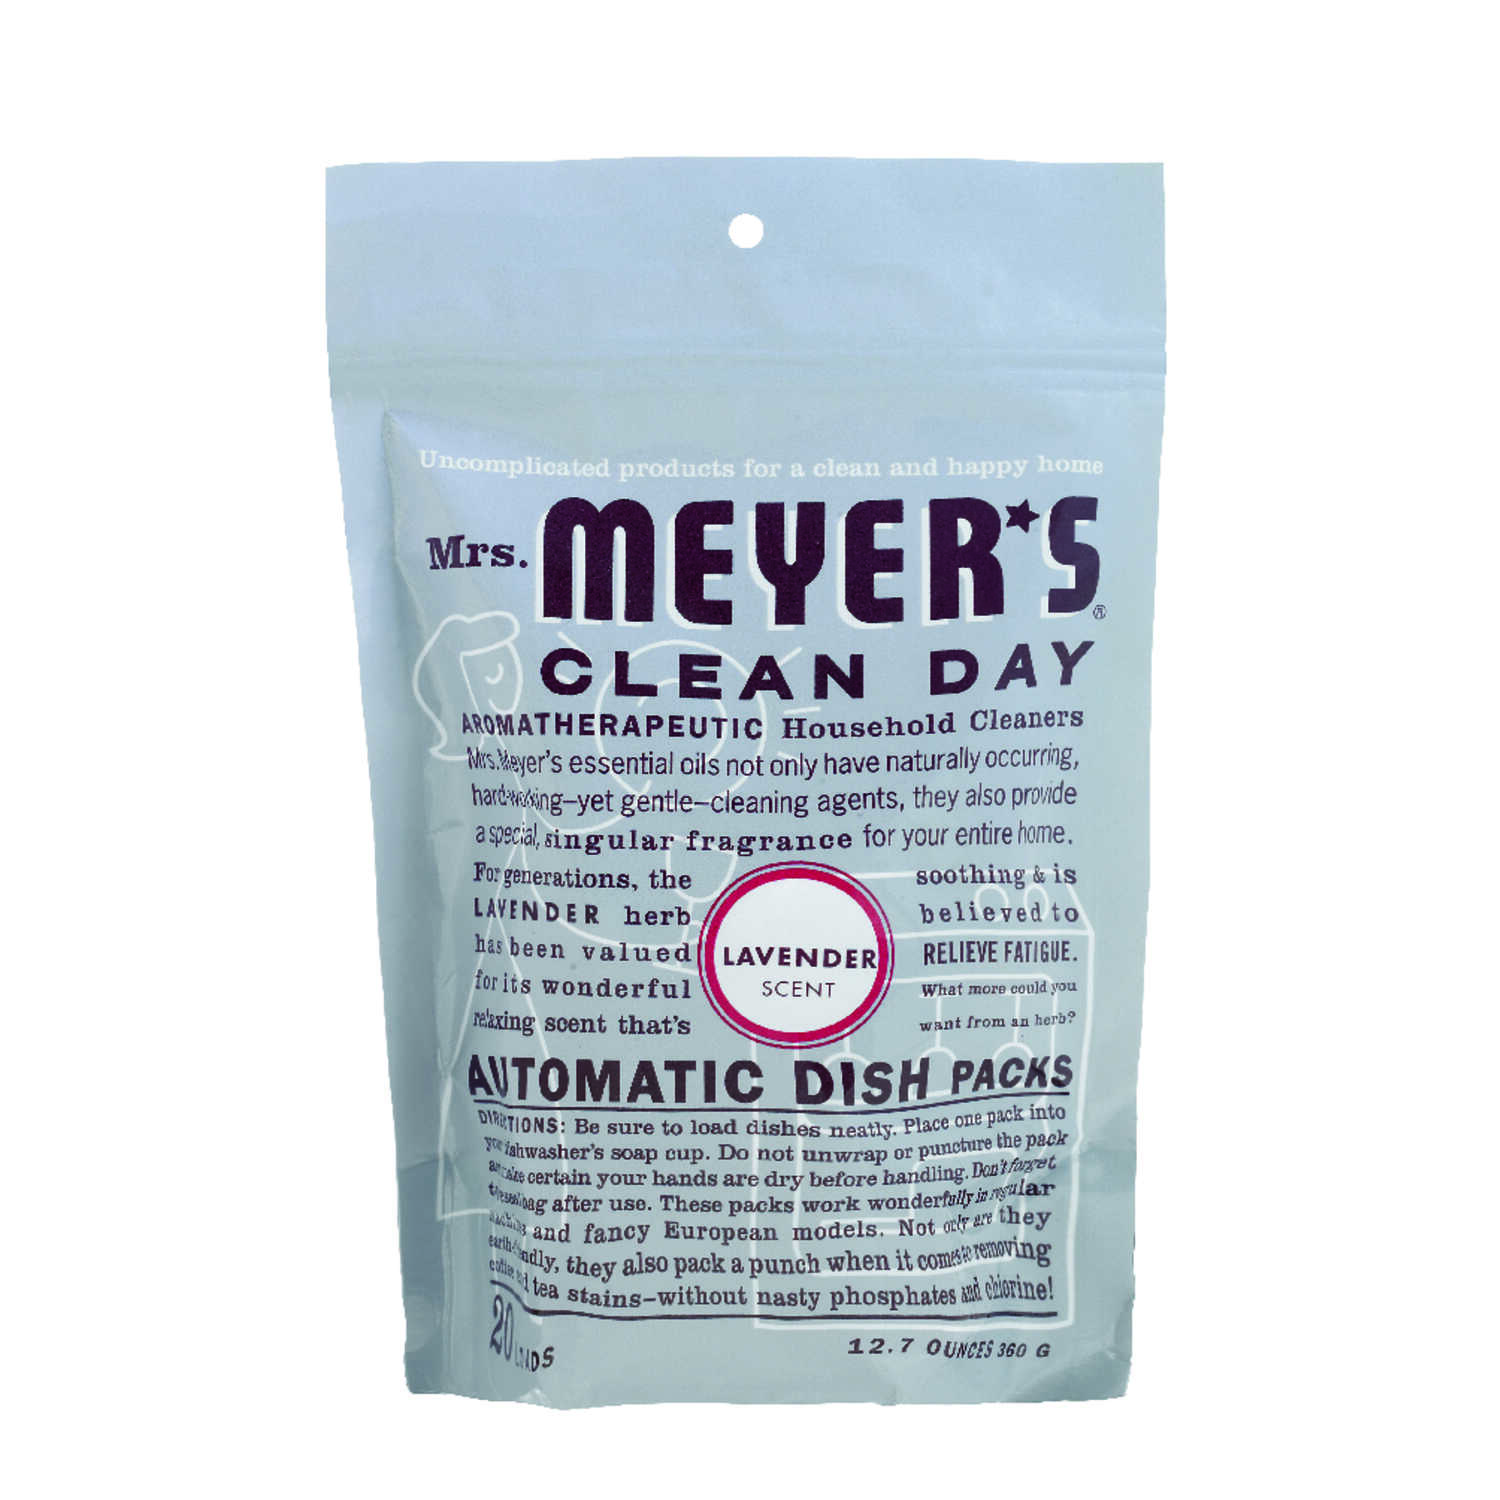 Mrs. Meyer's  Clean Day  Lavender Scent Powder  Dishwasher Detergent  12.7 oz. 20 pk